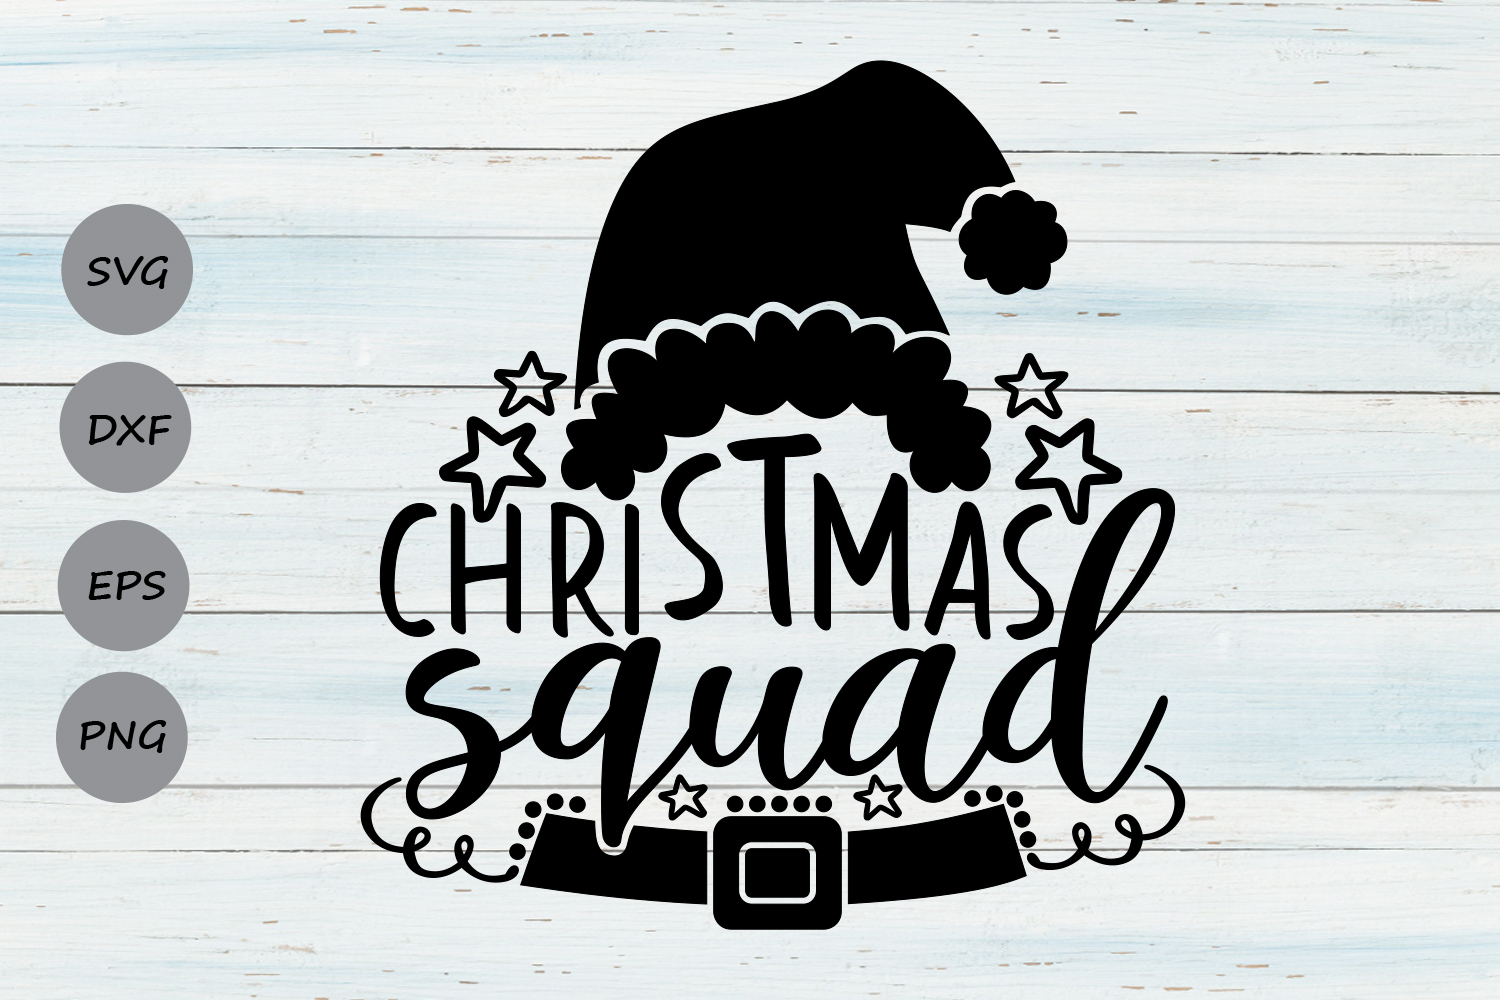 Download Free Christmas Squad Graphic By Cosmosfineart Creative Fabrica for Cricut Explore, Silhouette and other cutting machines.